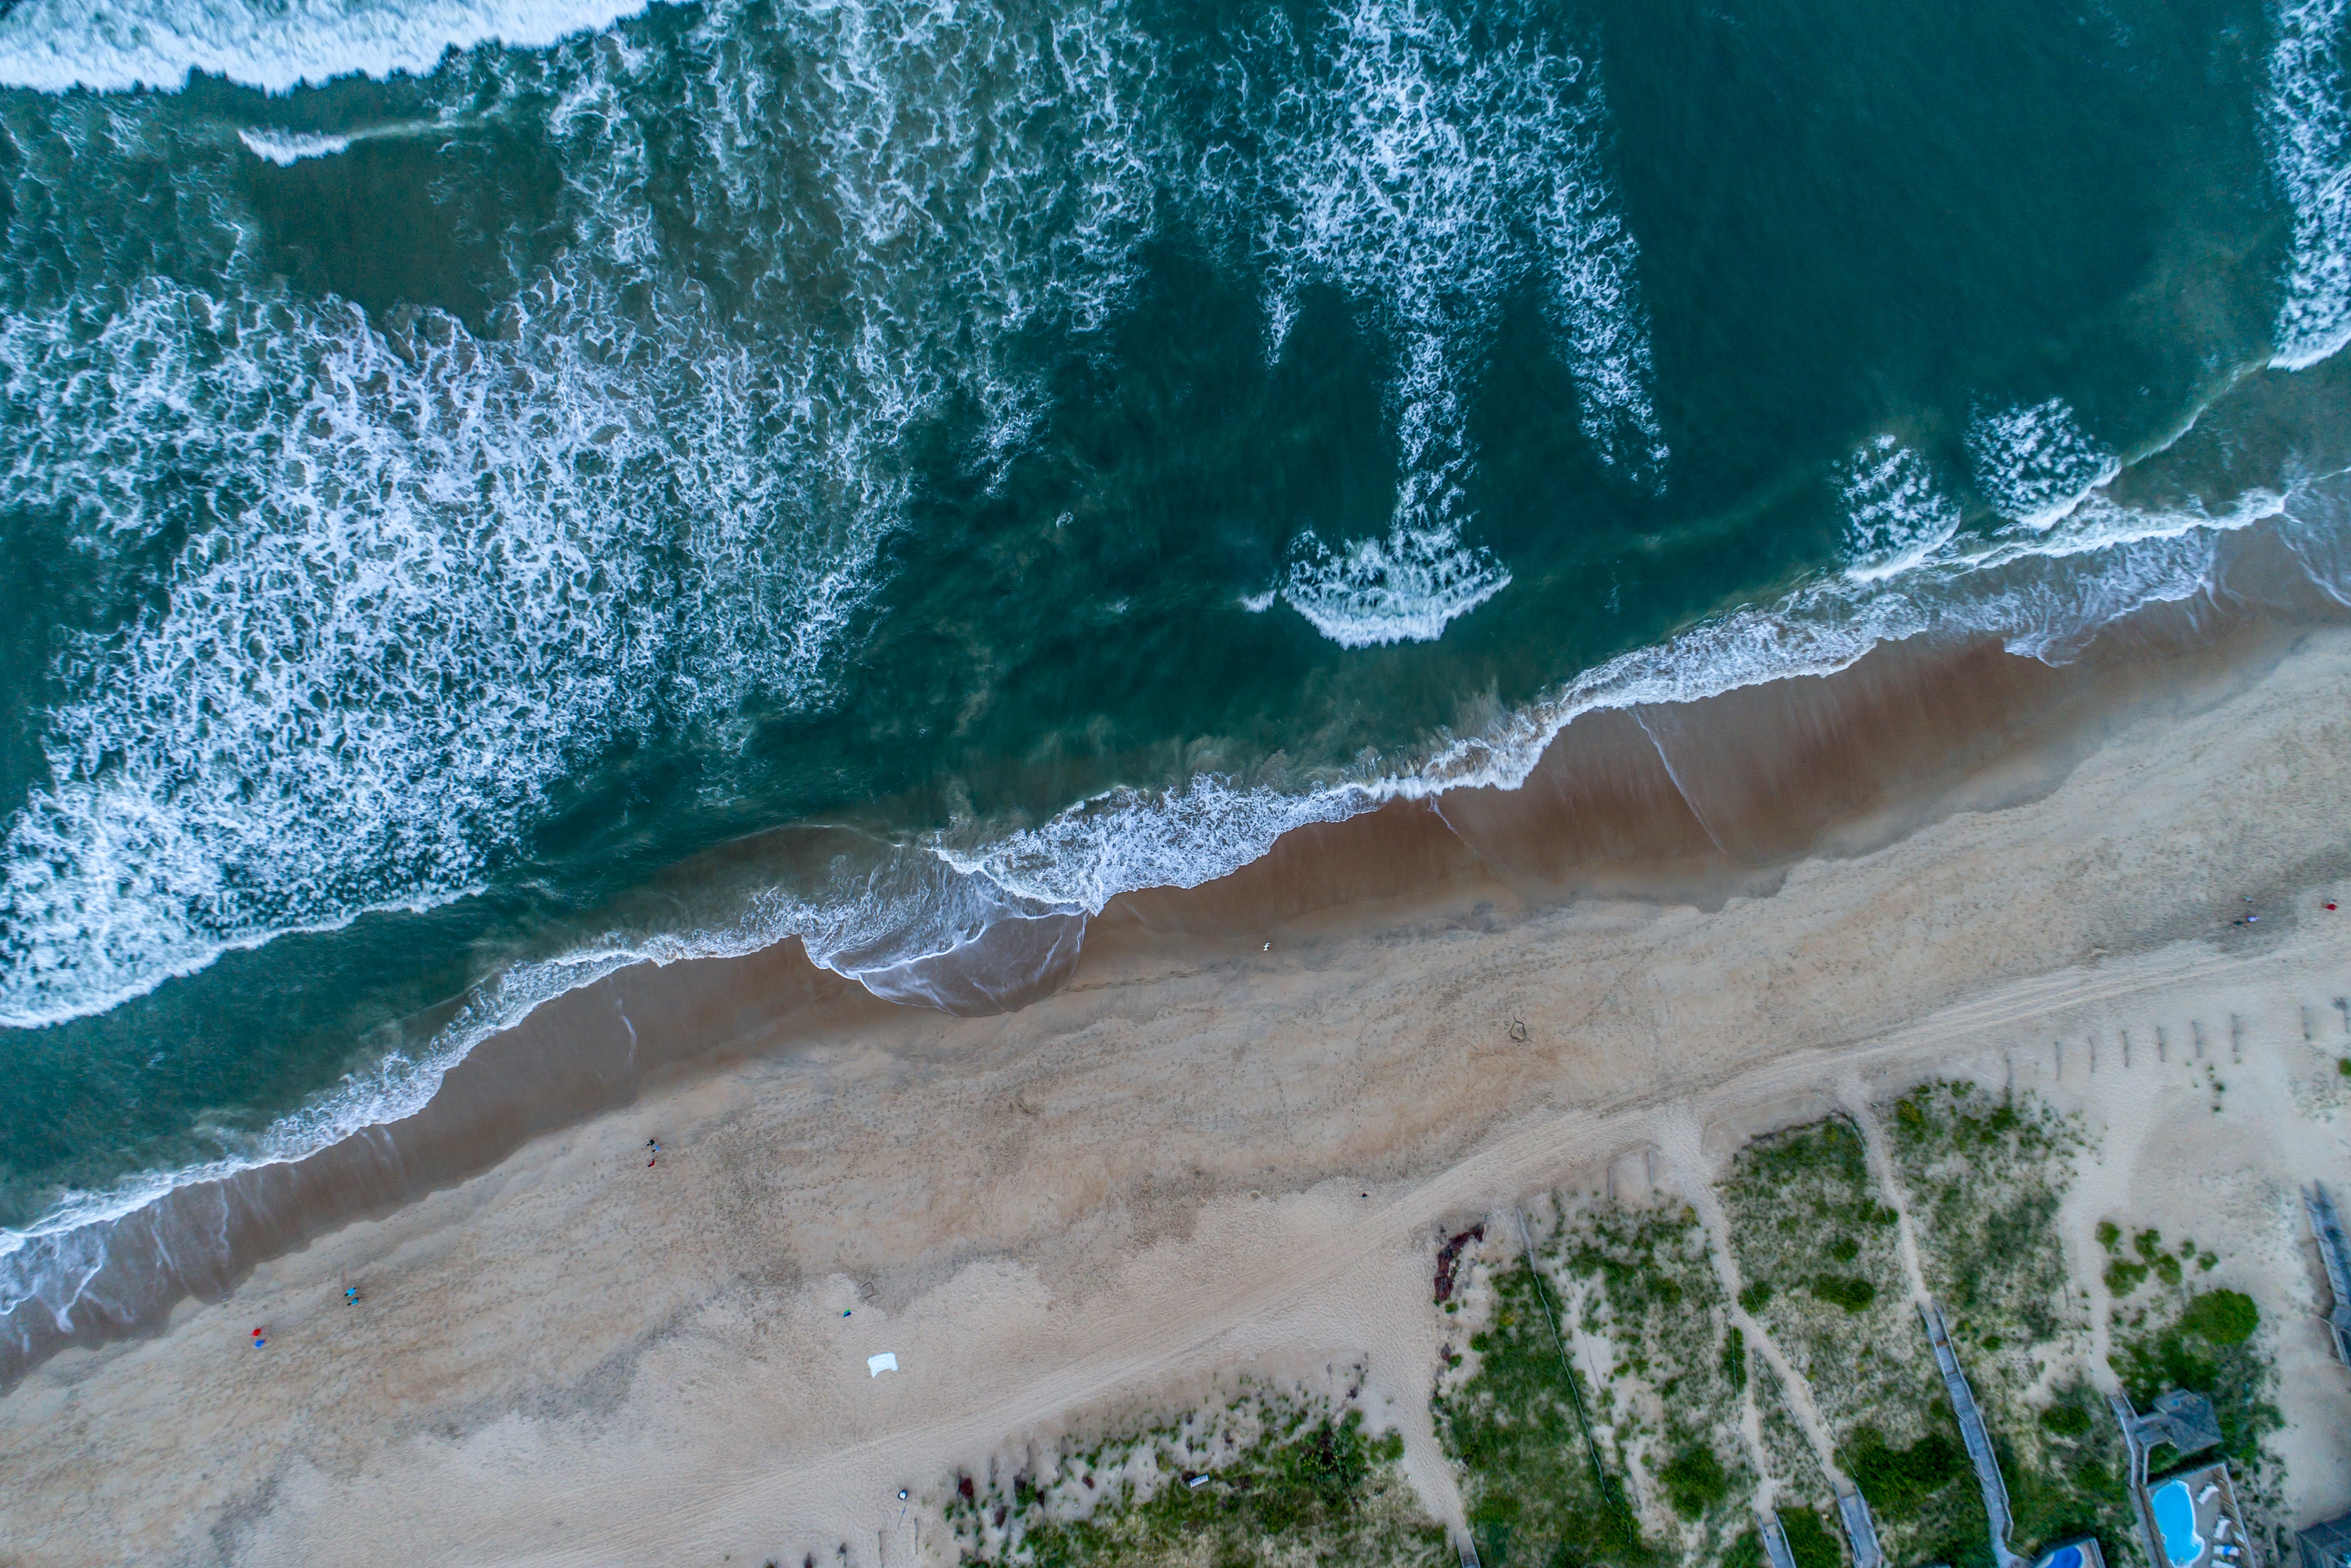 Drone aerial view of the ocean washing on the sand beach shore at Nags Head, North Carolina, United States